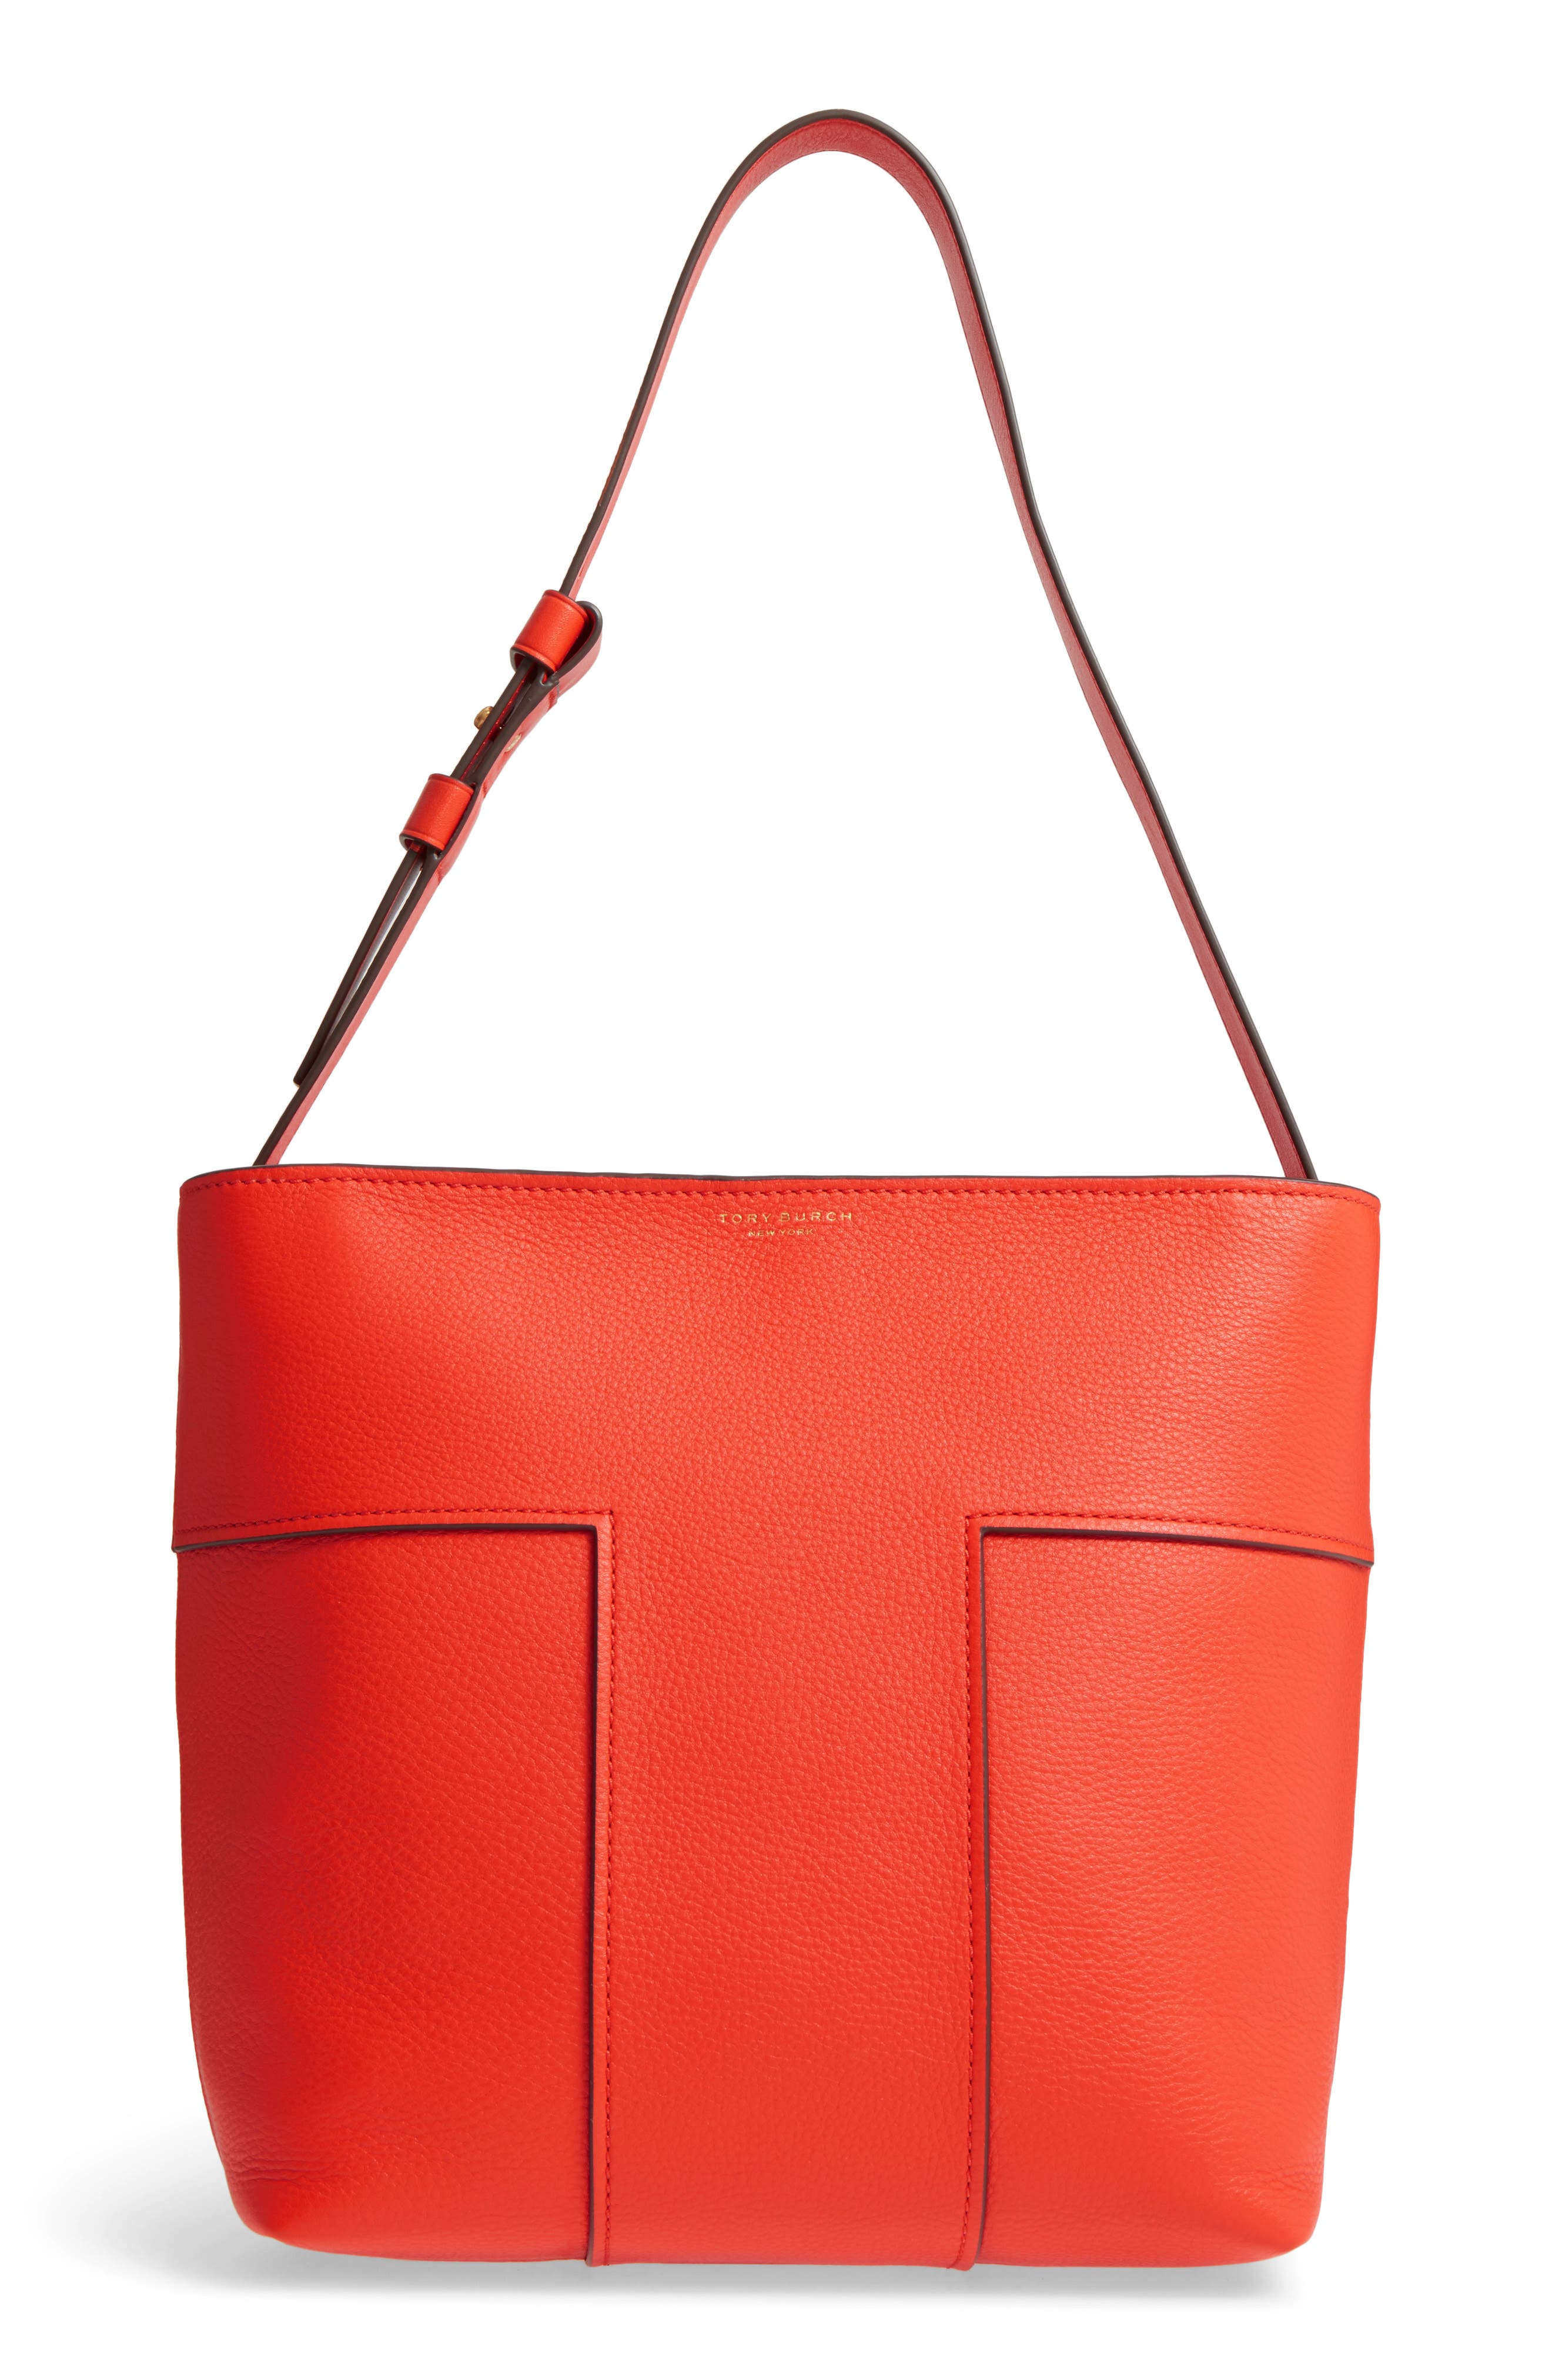 Block-T Pebbled Leather Hobo,                             Main thumbnail 1, color,                             Spicy Orange